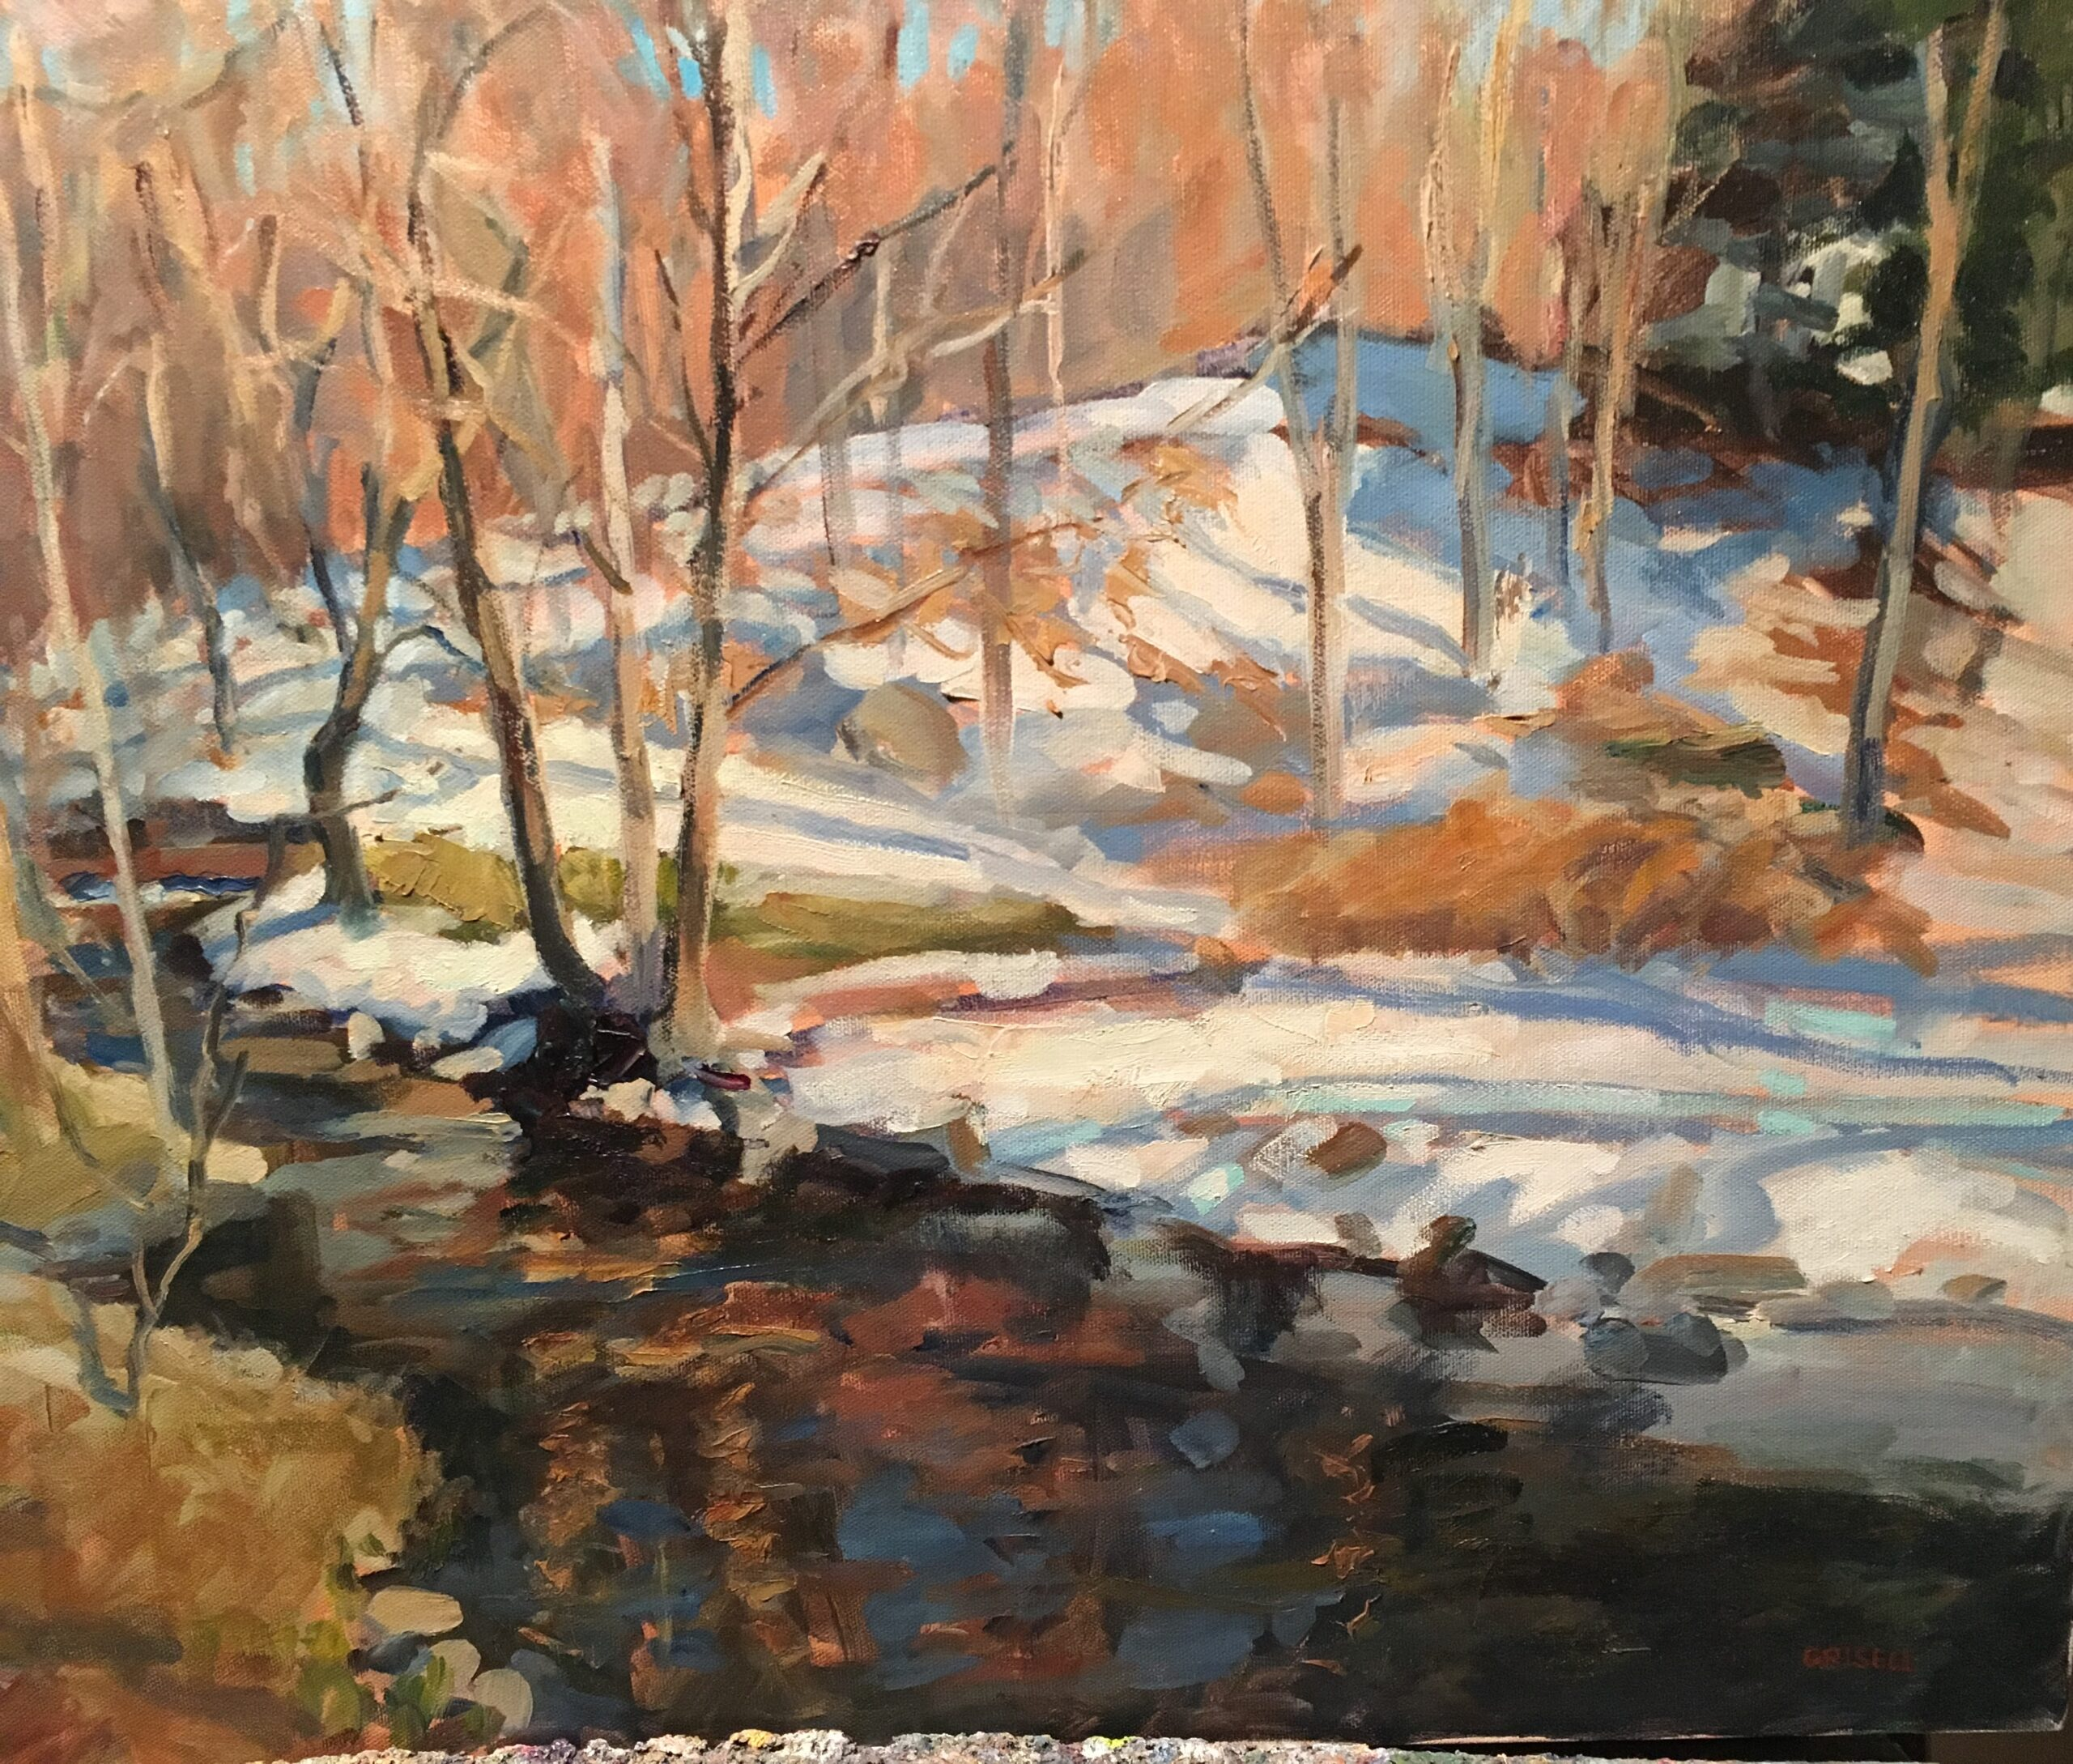 Brook in Snow, Oil on Canvas, 18 x 24 Inches, by Susan Grisell, $750